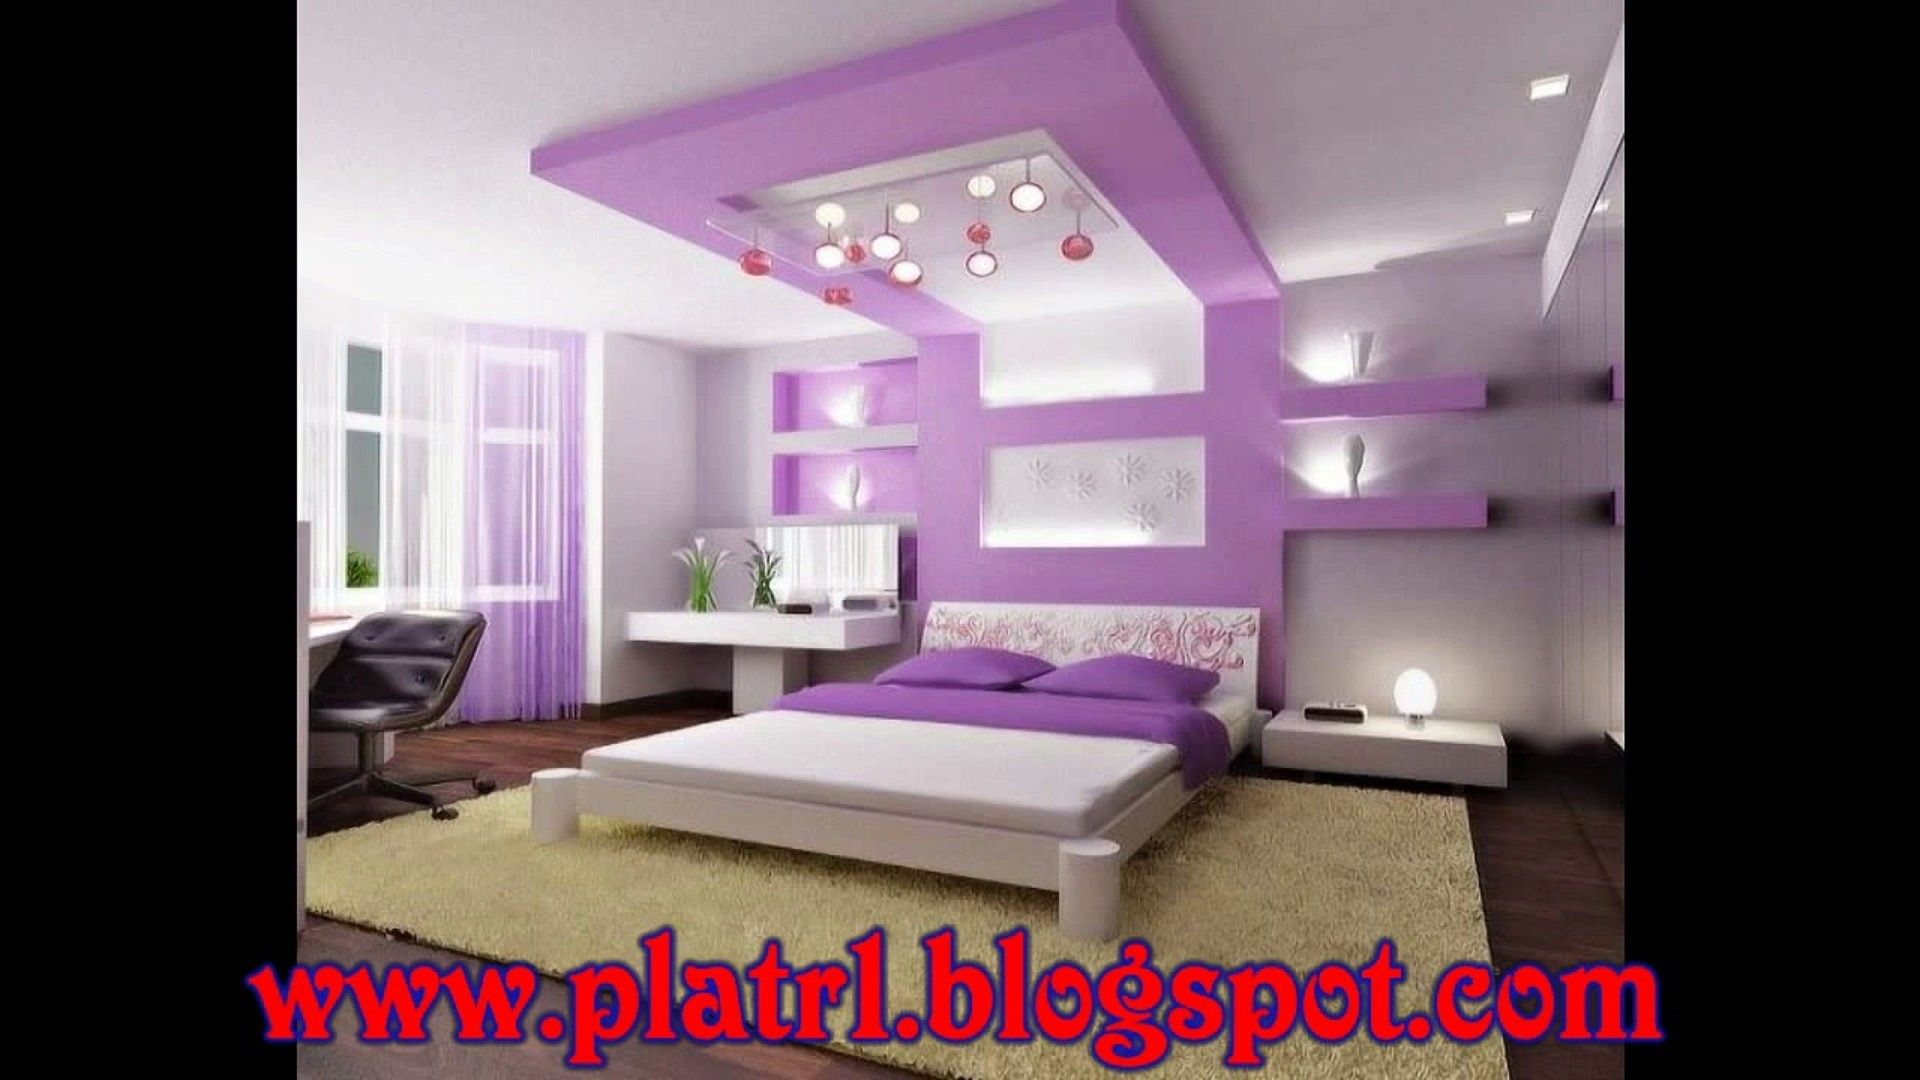 Faux Plafond Tres Moderne Pour Chambre Coucher Hd Vid O Dailymotion